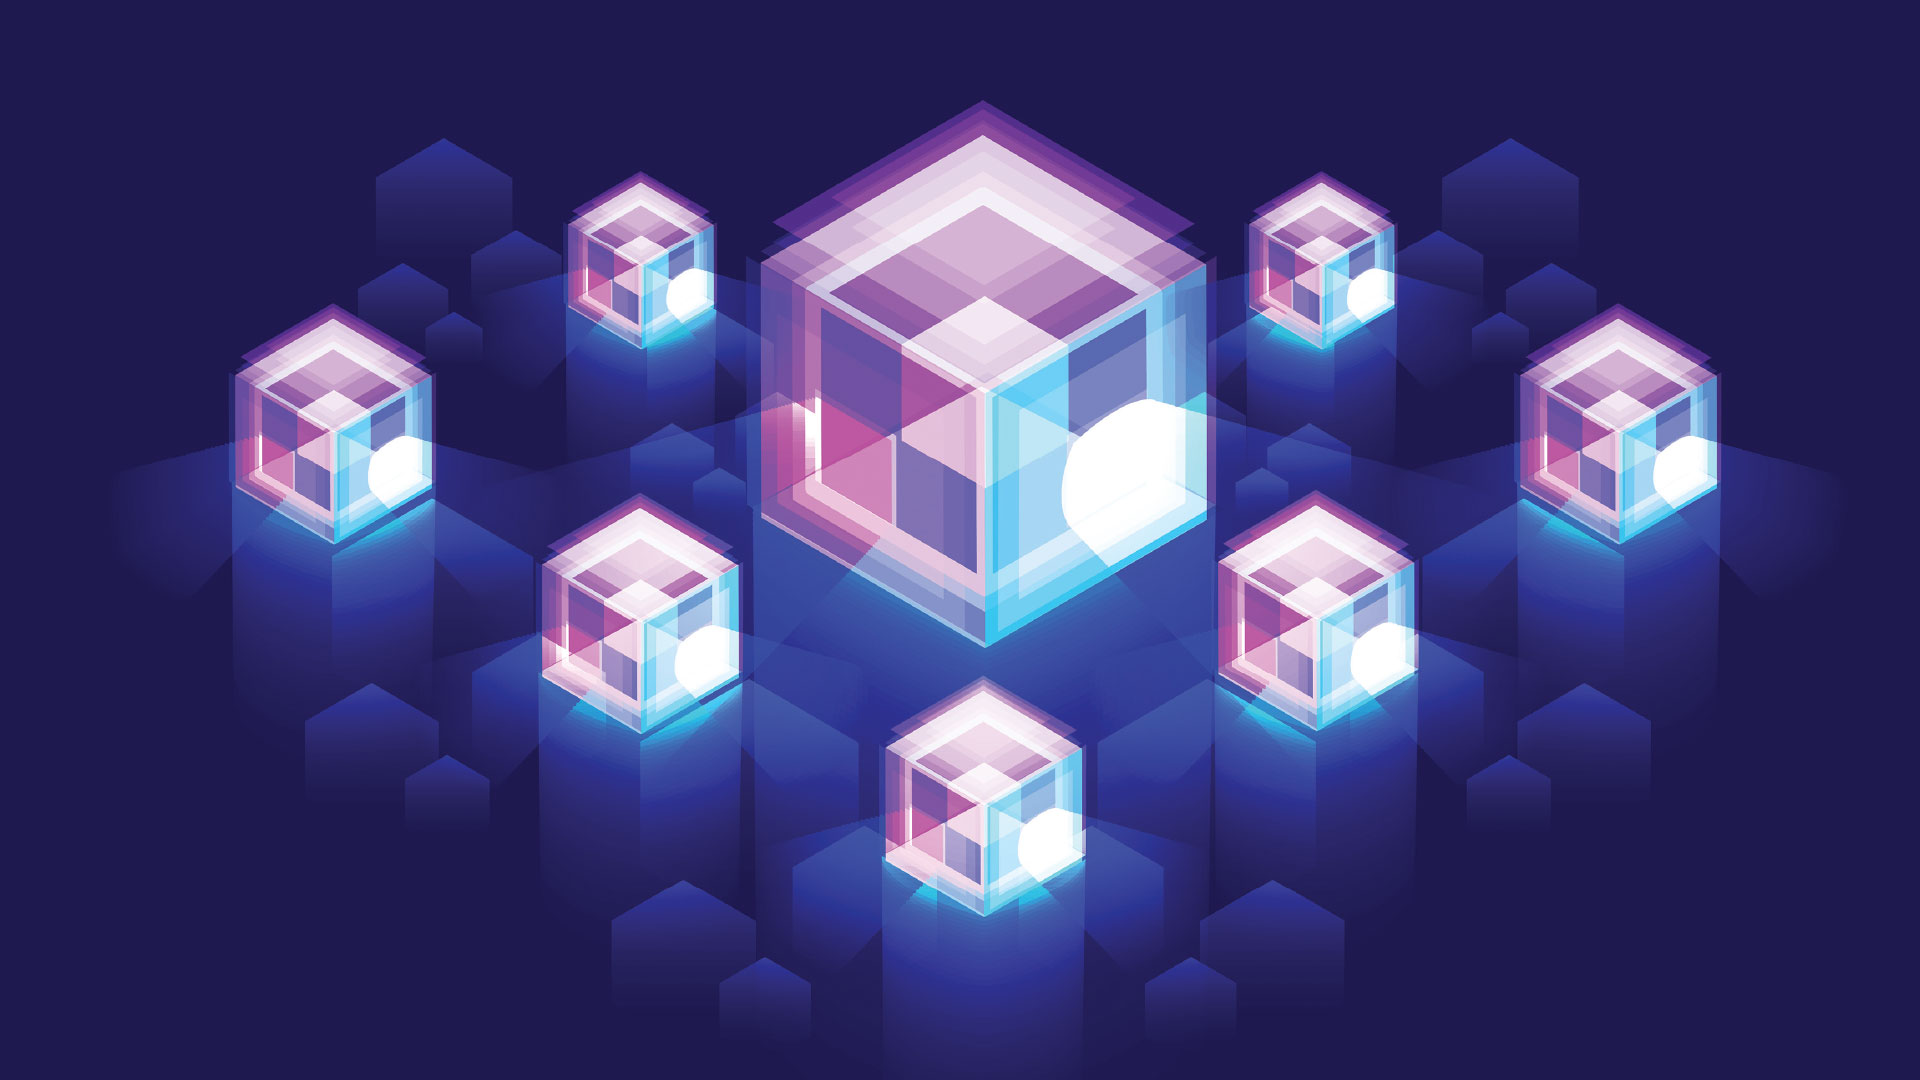 8 purple and blue semitransparent cubes on a blue background.